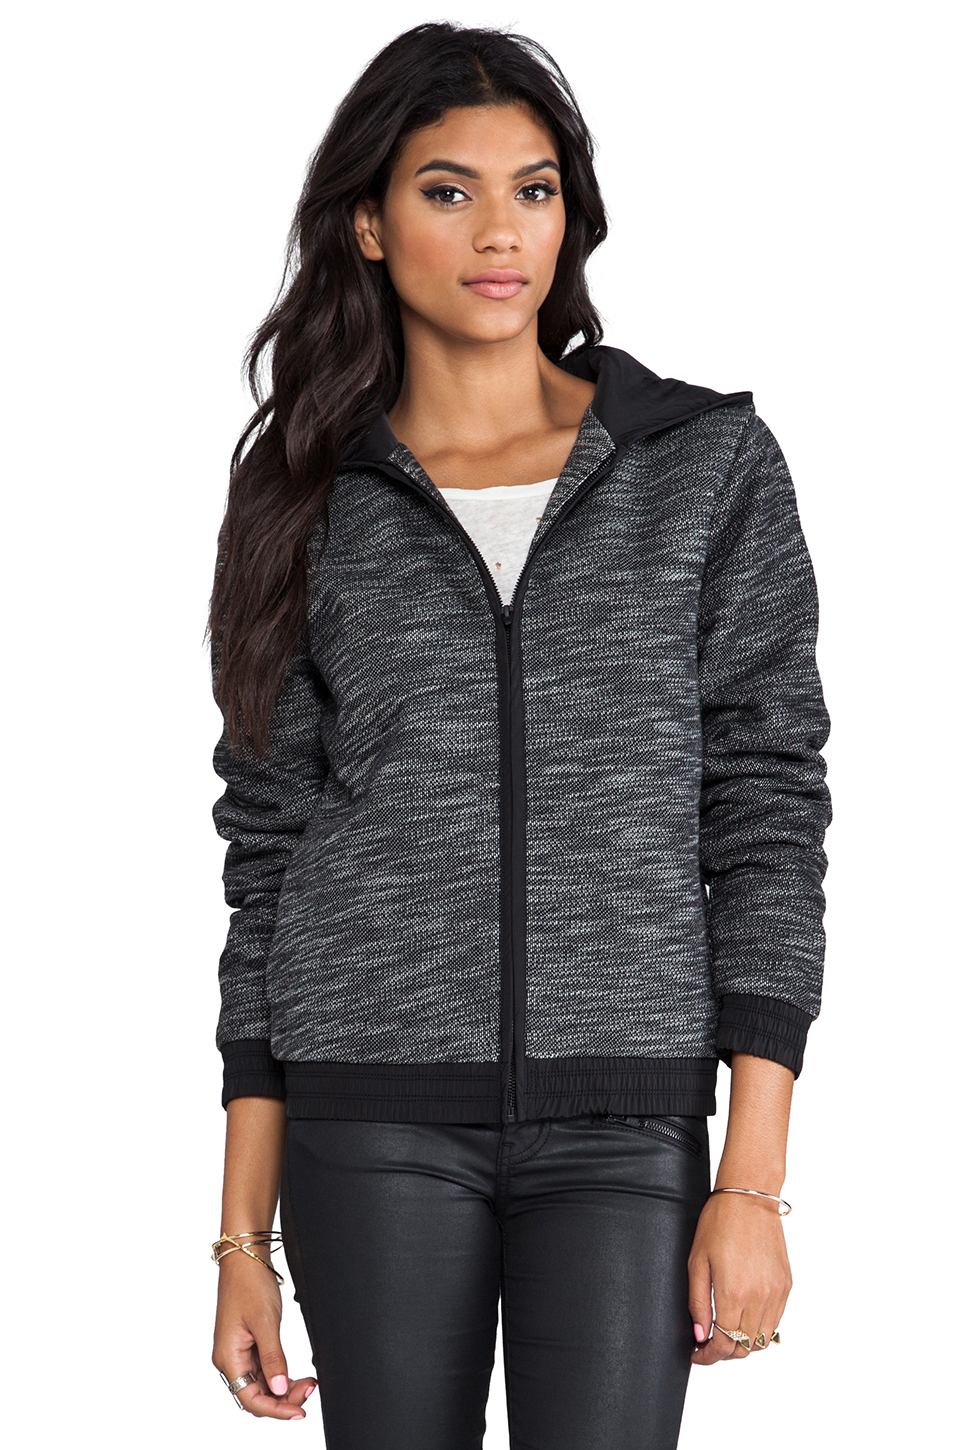 T by Alexander Wang French Terry Zip Up Hoodie With Nylon Trim in Black & White